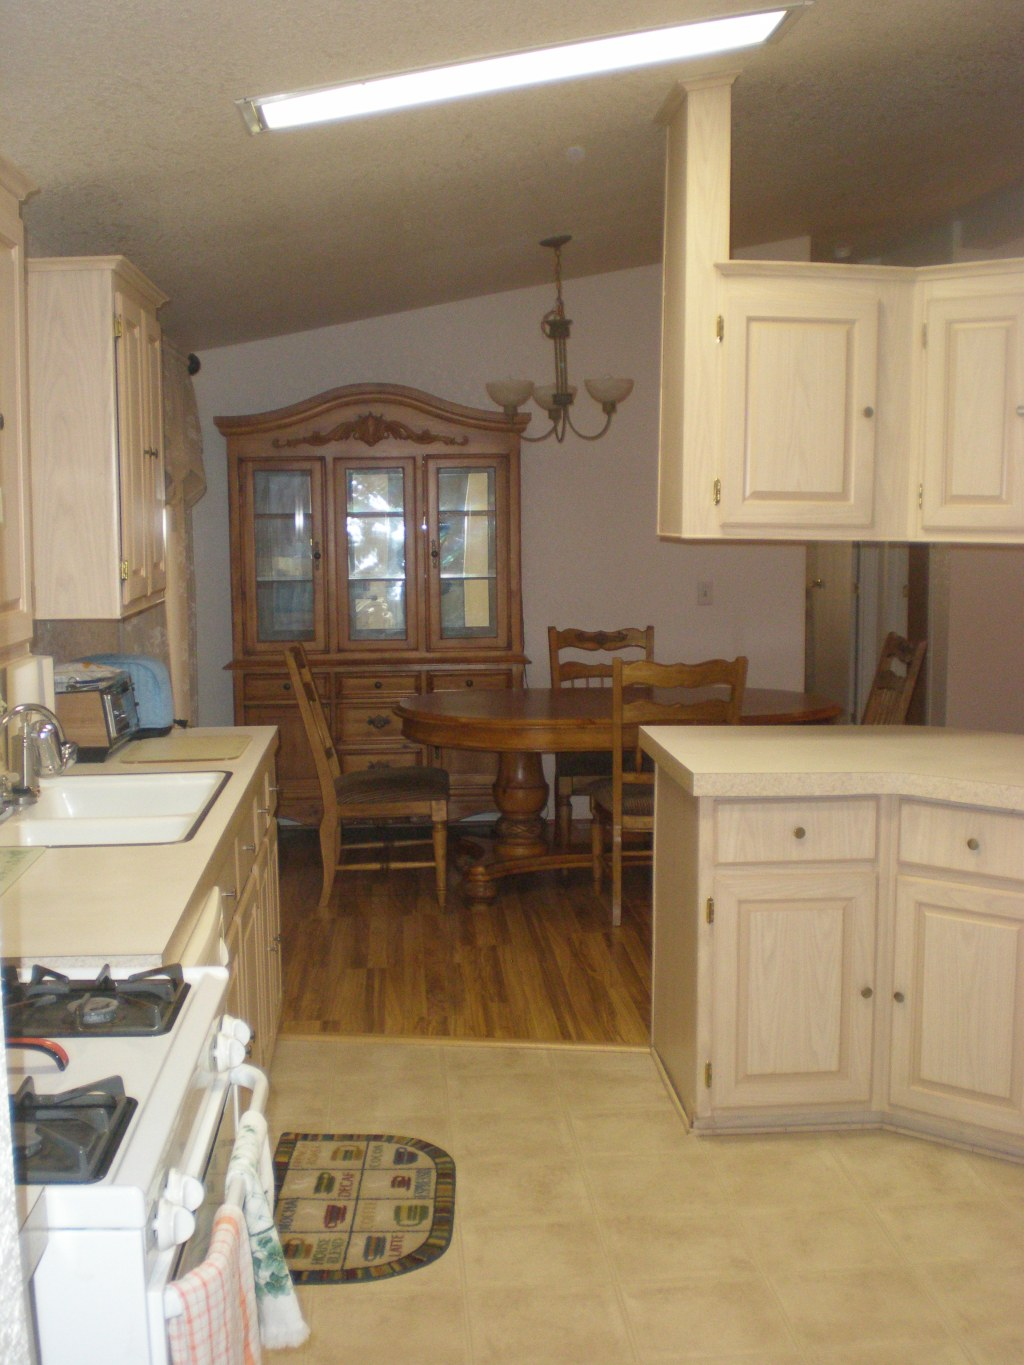 Spacious 3 bdr 2 ba + Detached Craft Room/Office 55+ Park $29,900